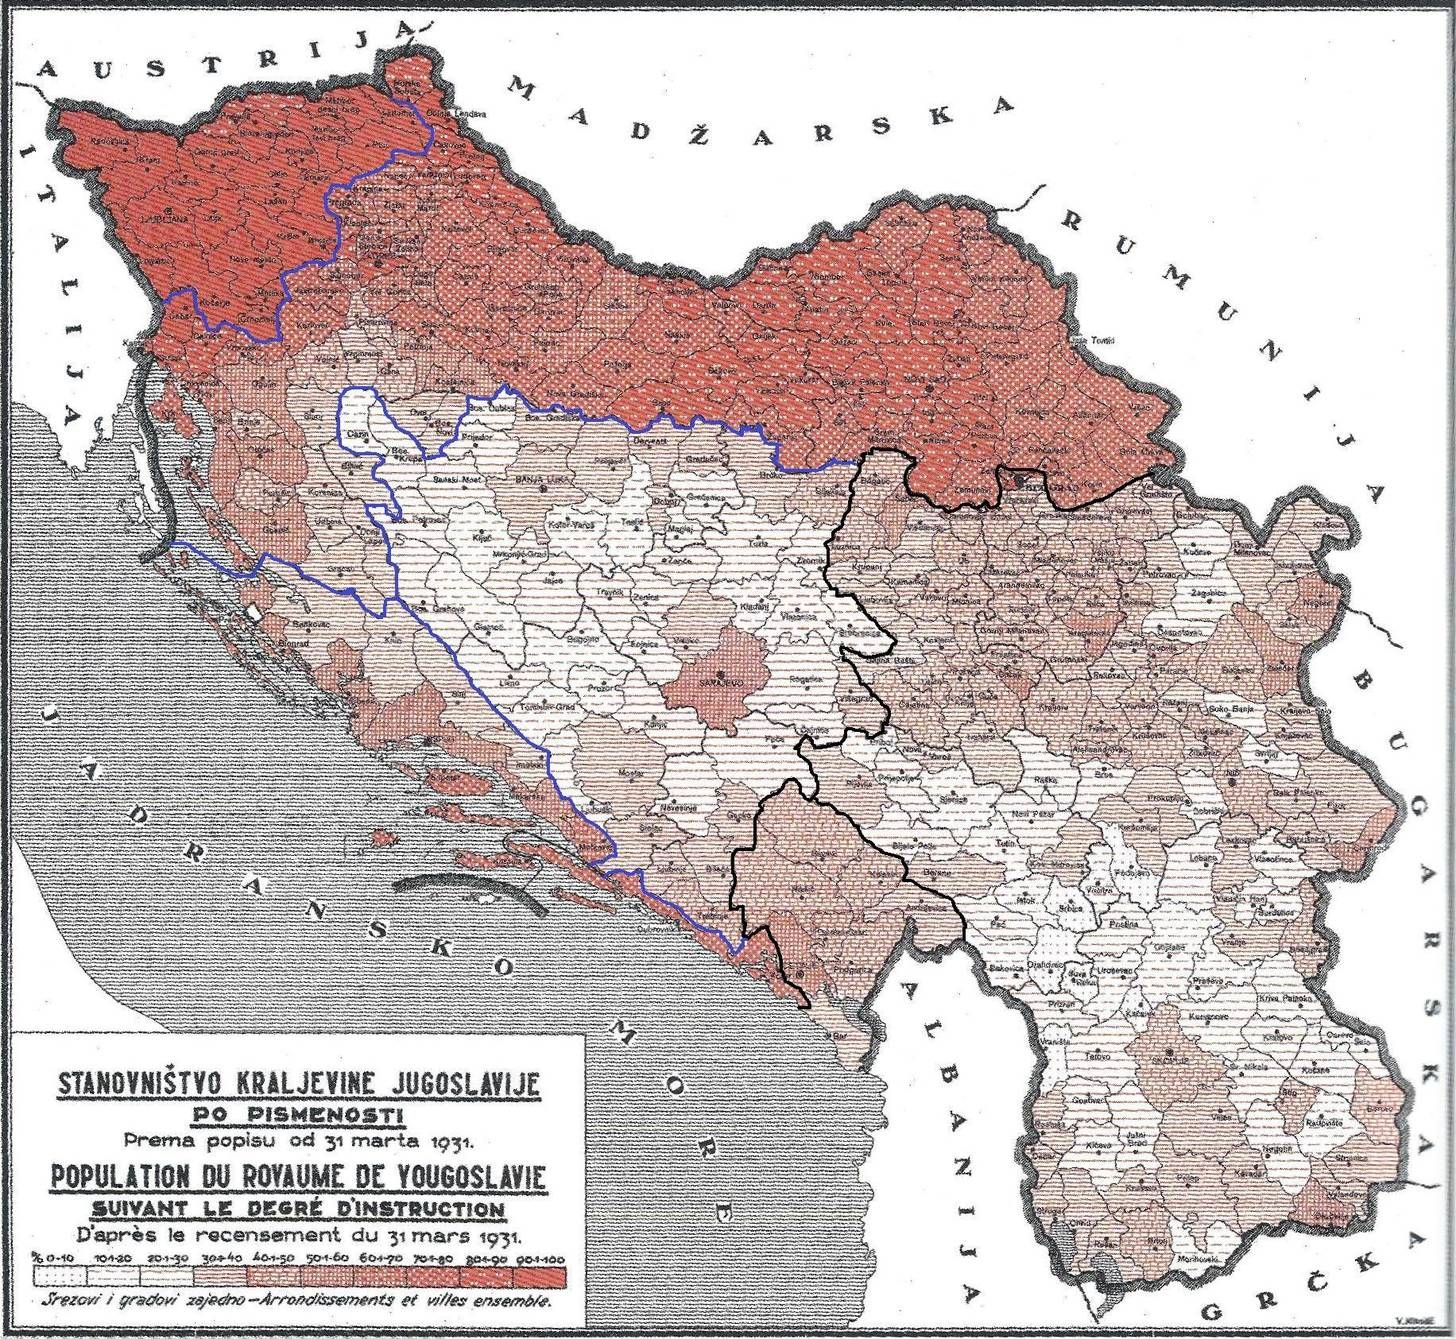 Literacy Rate In The Kingdom Of Yugoslavia Overlapped With Pre Ww1